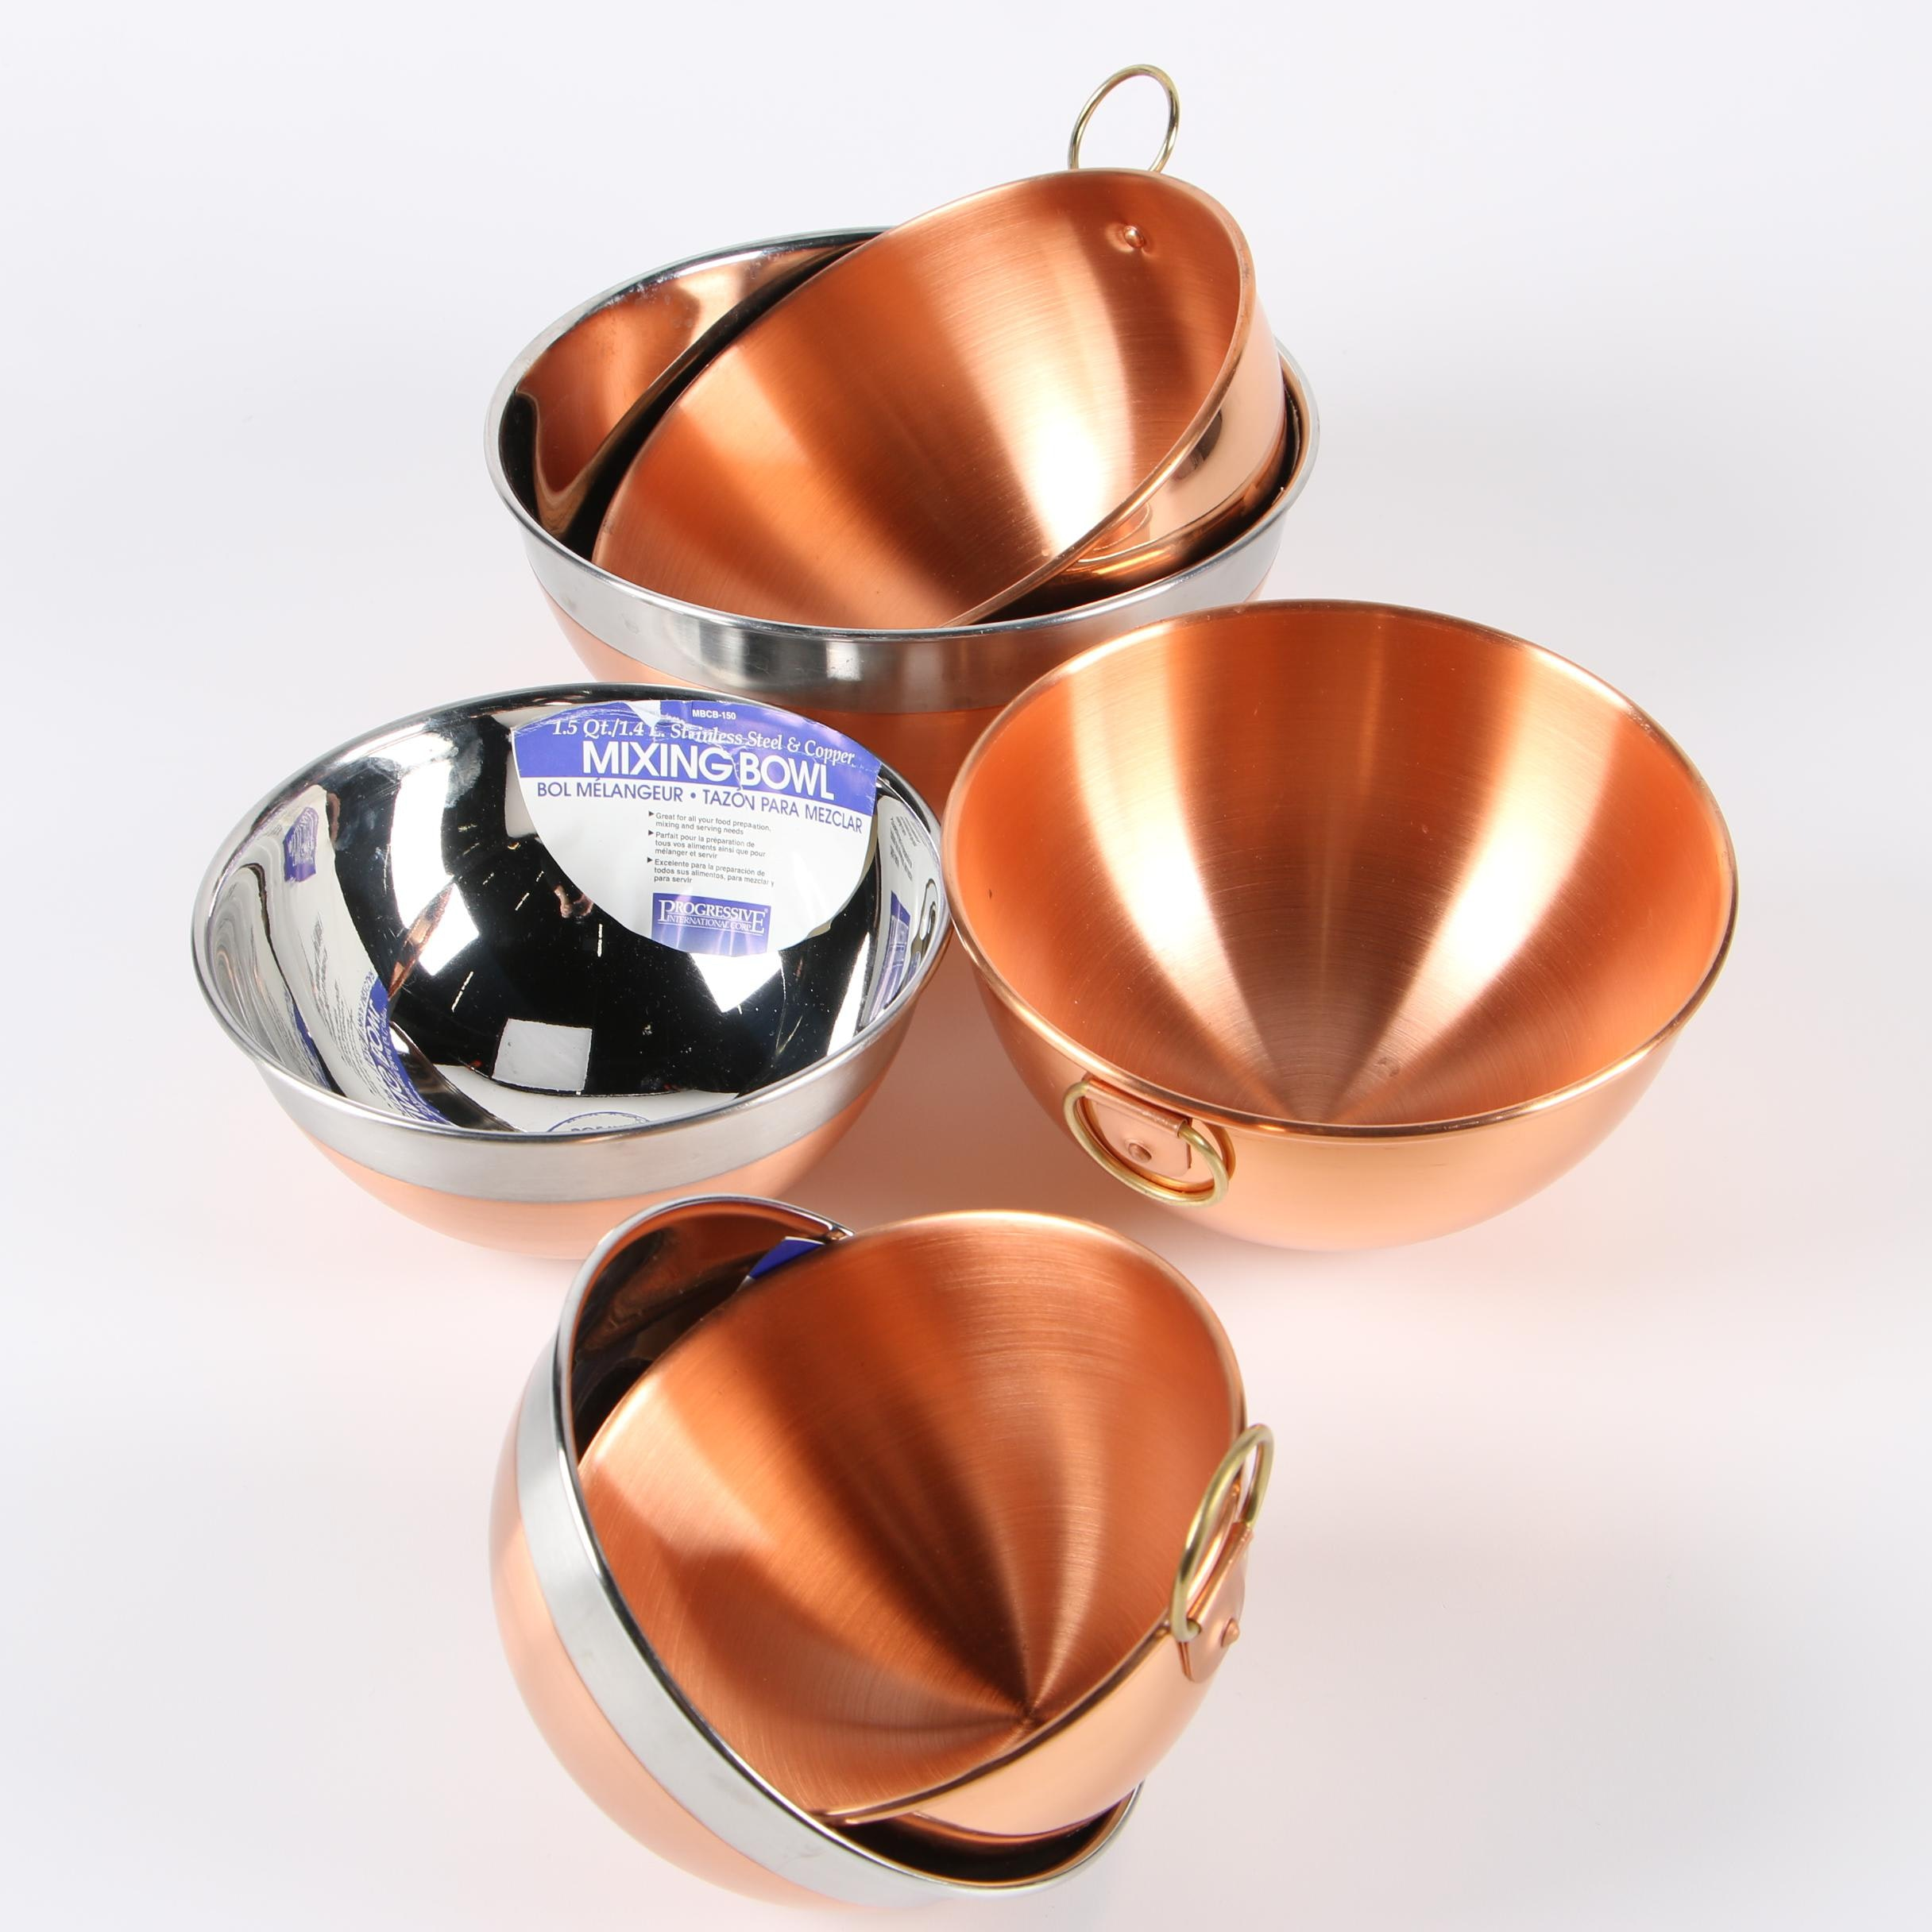 Stainless Steel and Portuguese Copper Mixing Bowls